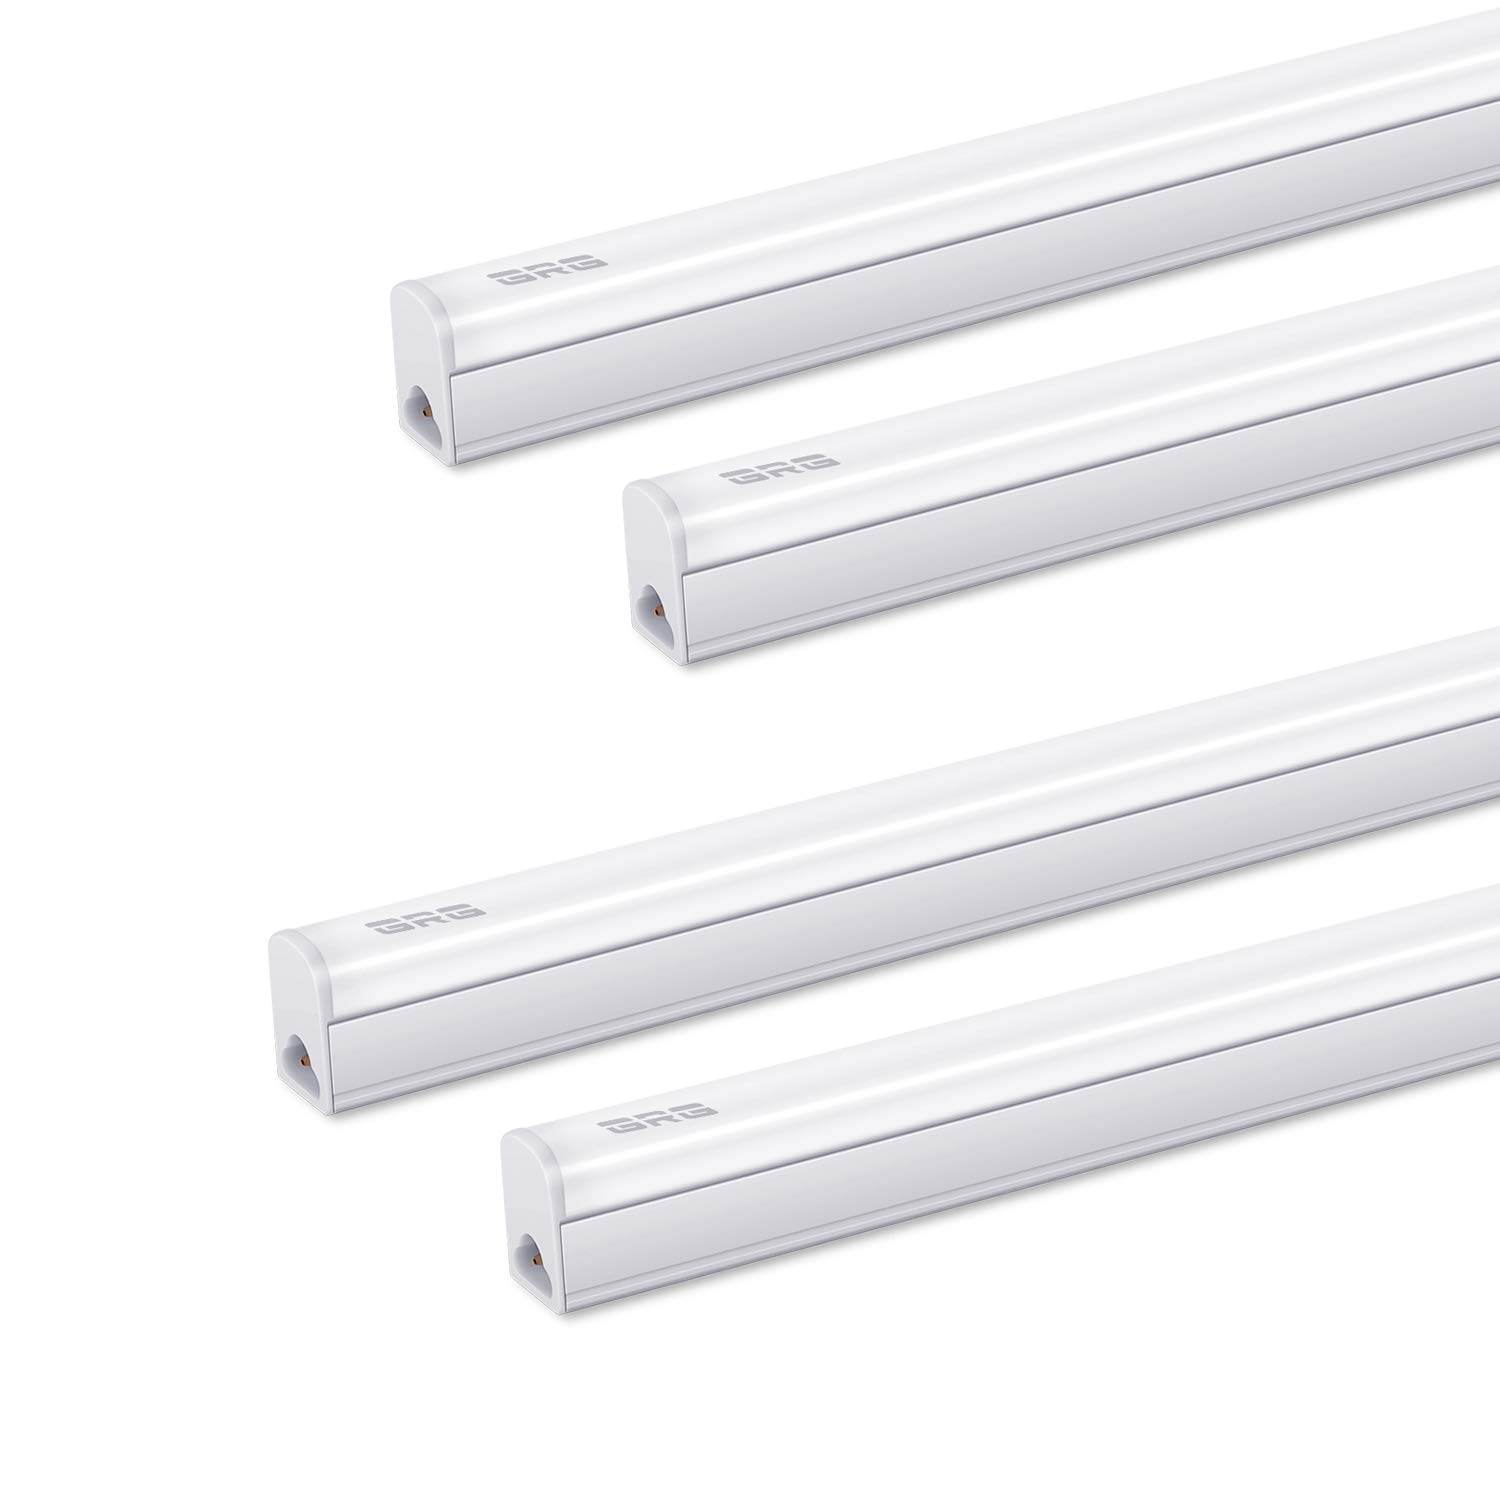 (Pack of 4) GRG LED T5 Integrated Single Fixture, 3Ft 15W 1650lm 6500K, Linkable Utility Shop Light, Garage Light, LED Ceiling & Under Cabinet Light, T5 T8 Fluorescent Tube Light Fixture Replacement by GRG